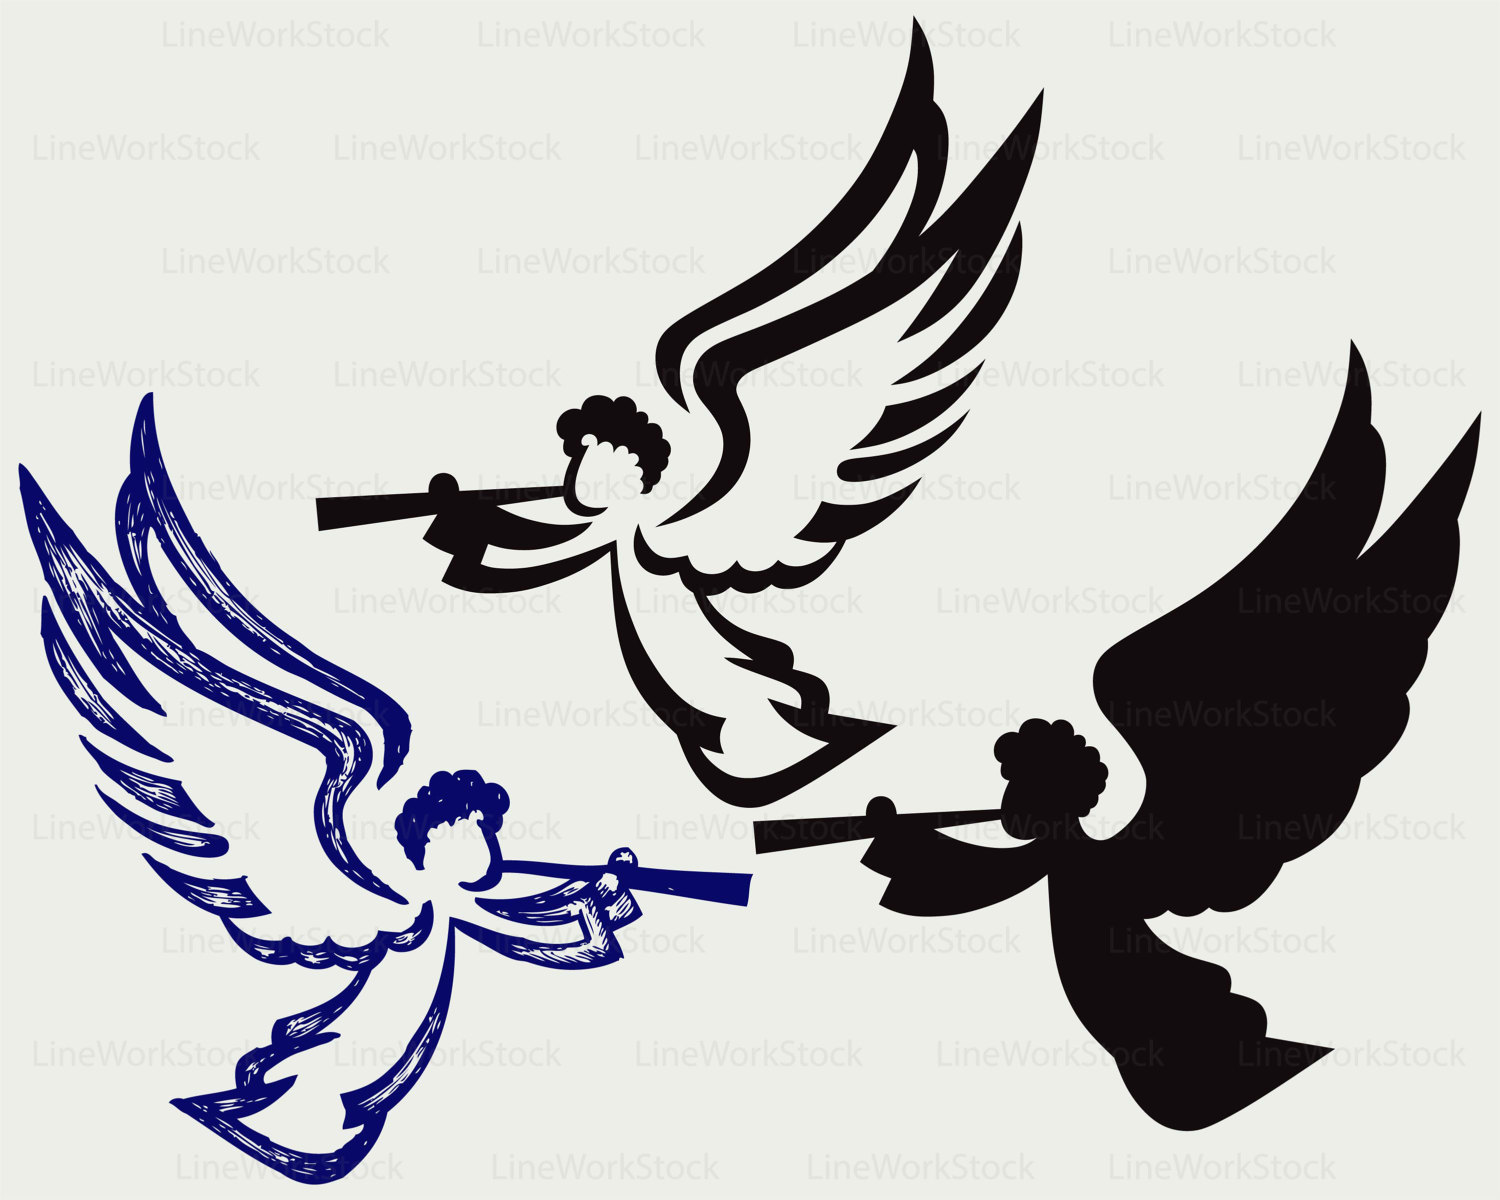 1500x1200 Angel With Trumpet Svgclipartangel Svgtrumpet Silhouetteangel